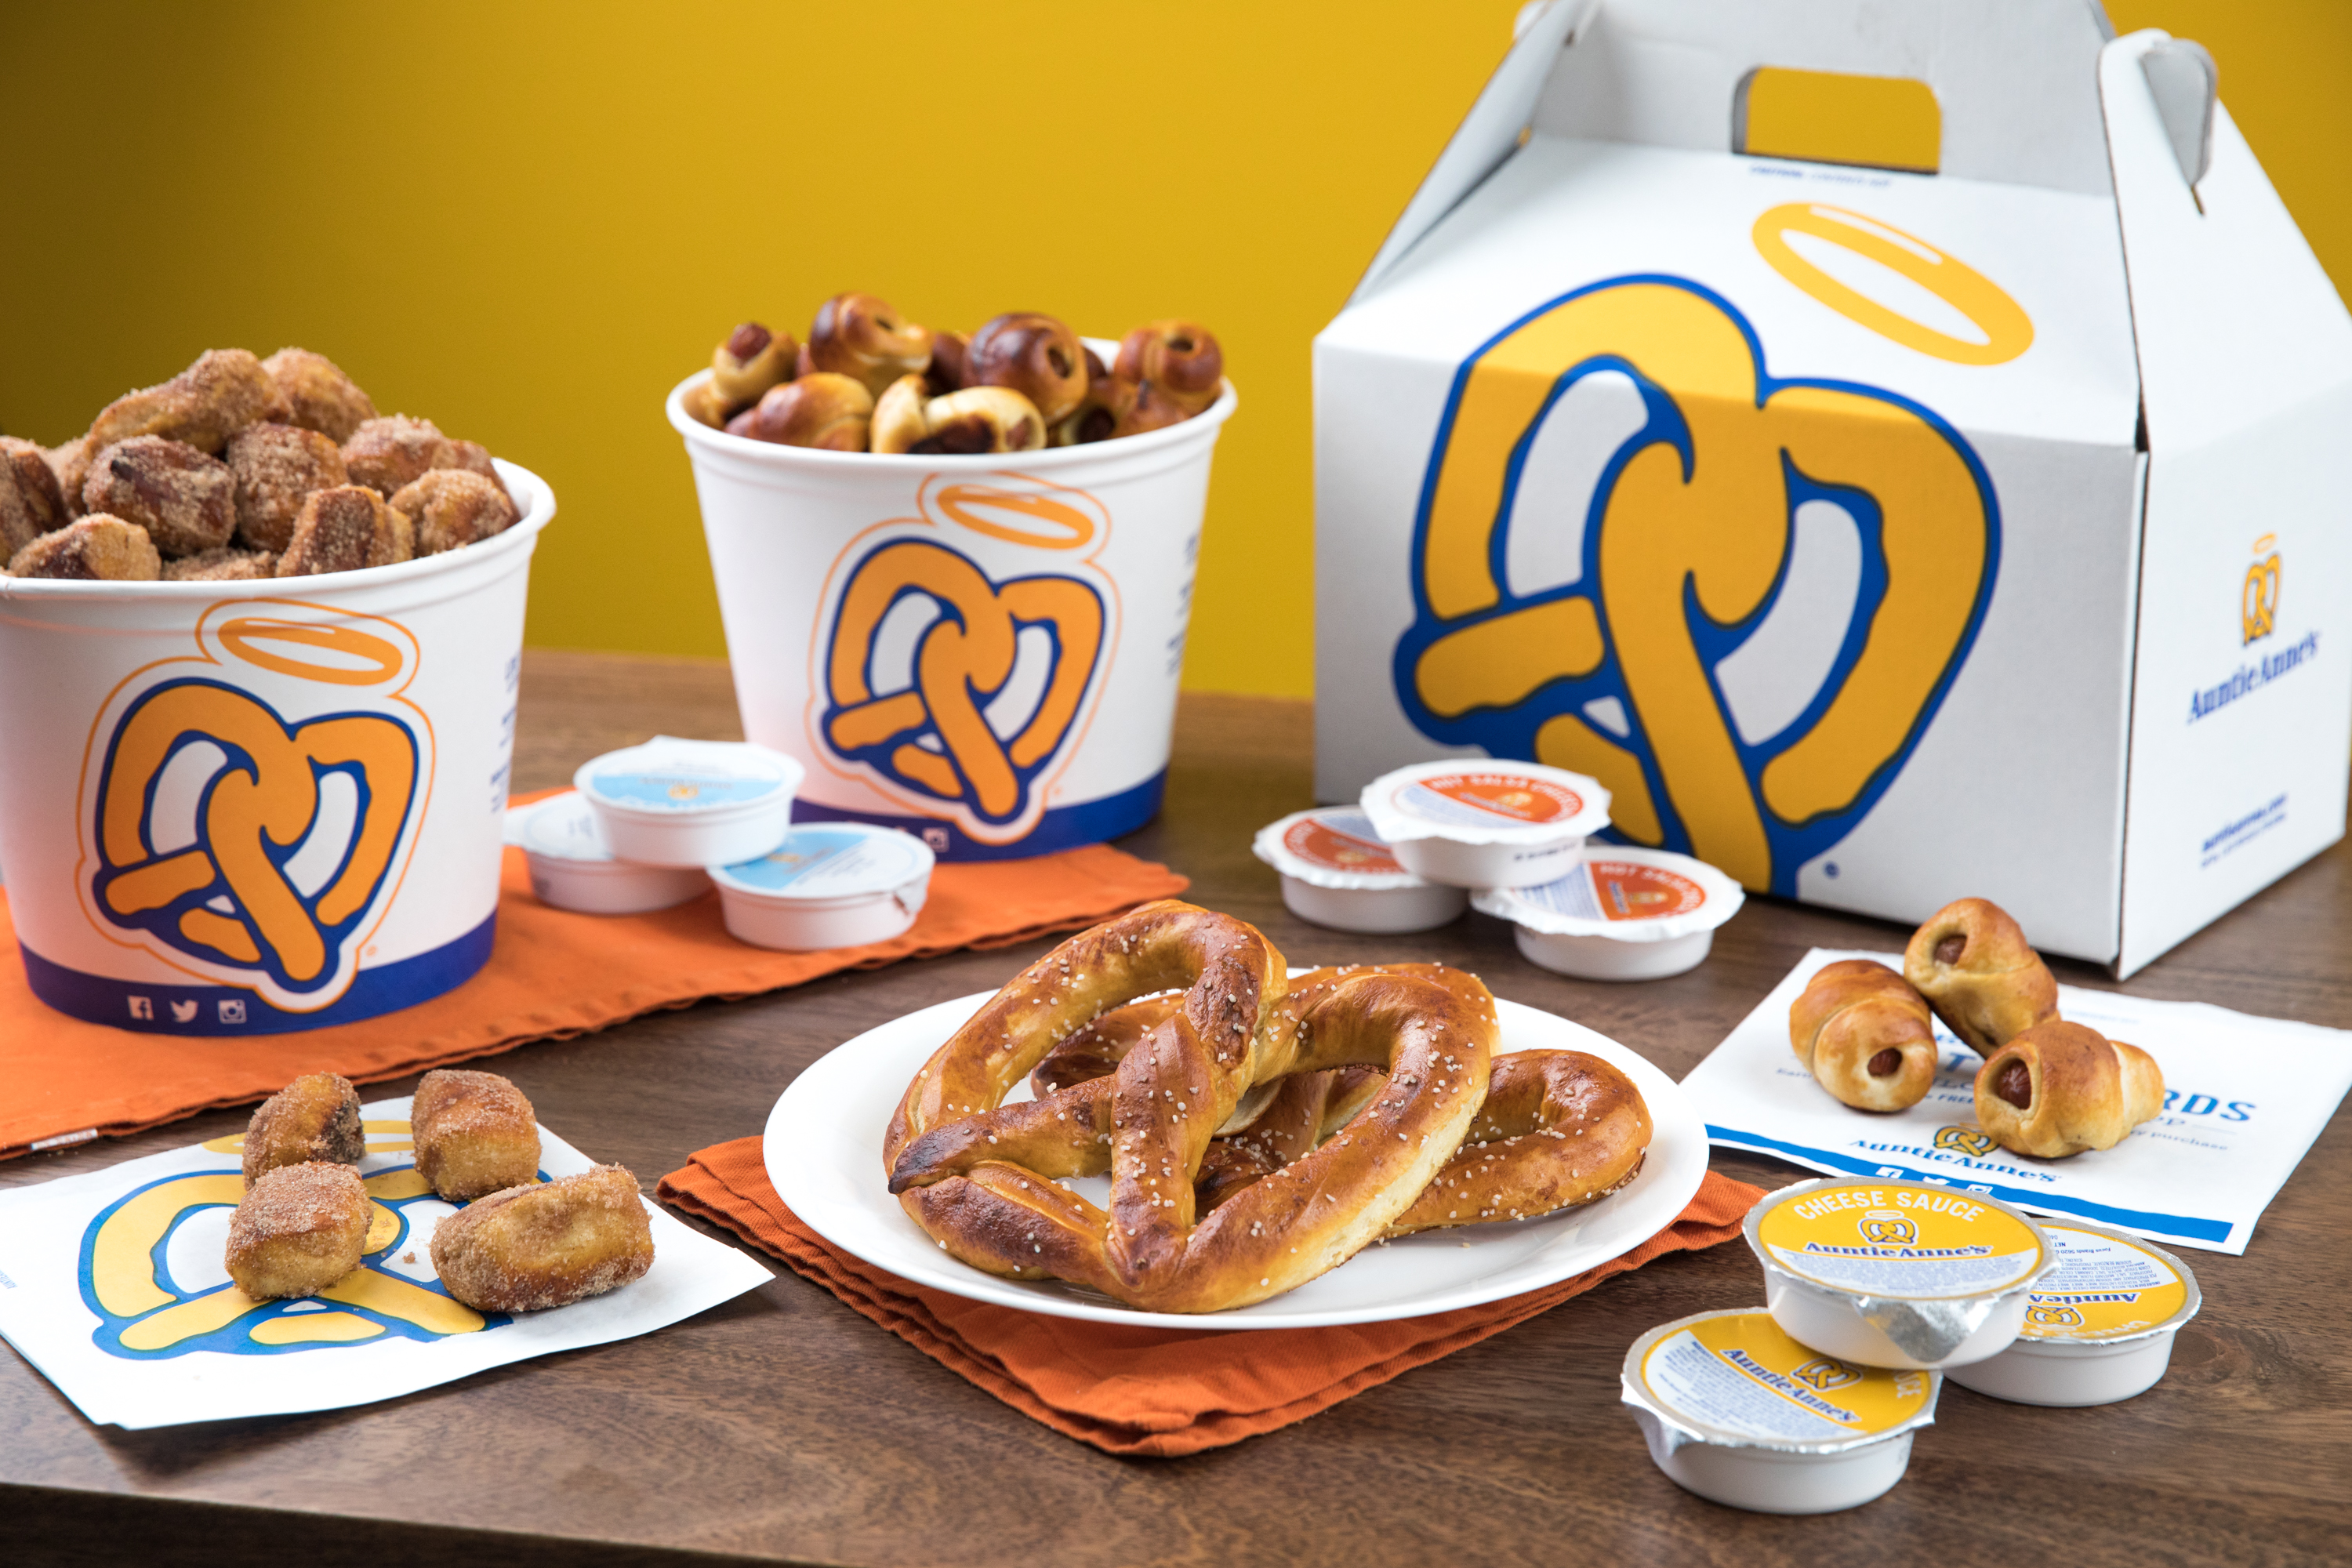 Whether you want a platter of pretzels or cinnamon buns, it's easy to find delicious catering options from Auntie Anne's.